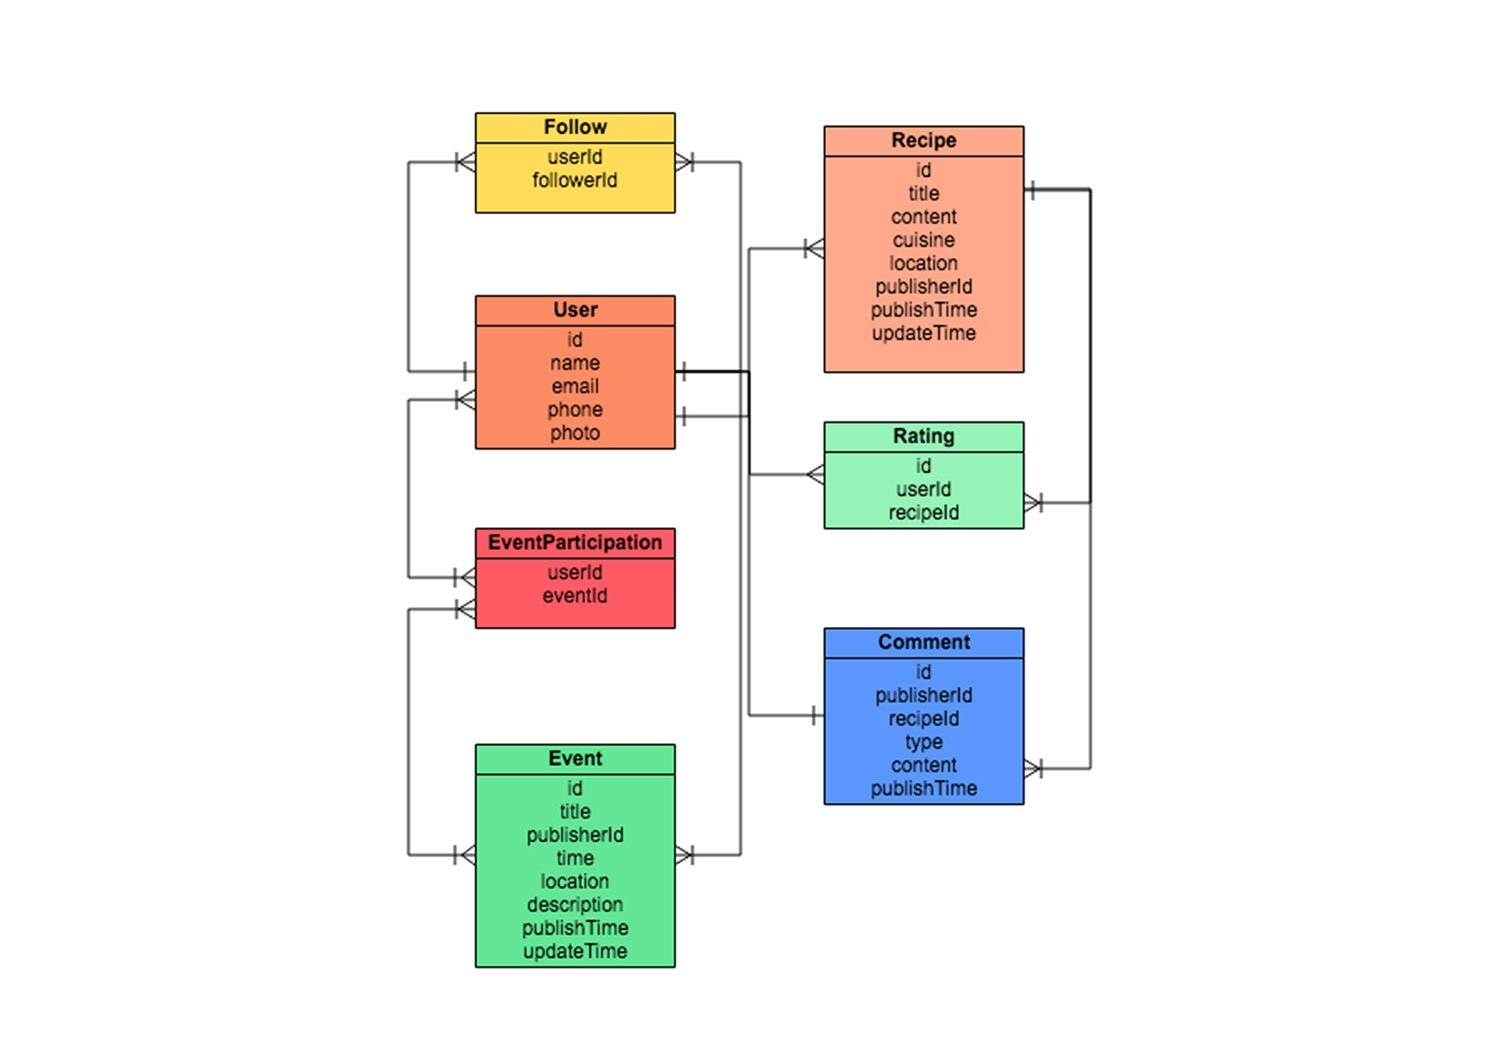 Er Diagram Tool | Draw Er Diagrams Online | Gliffy inside What Is Er Diagram With Example